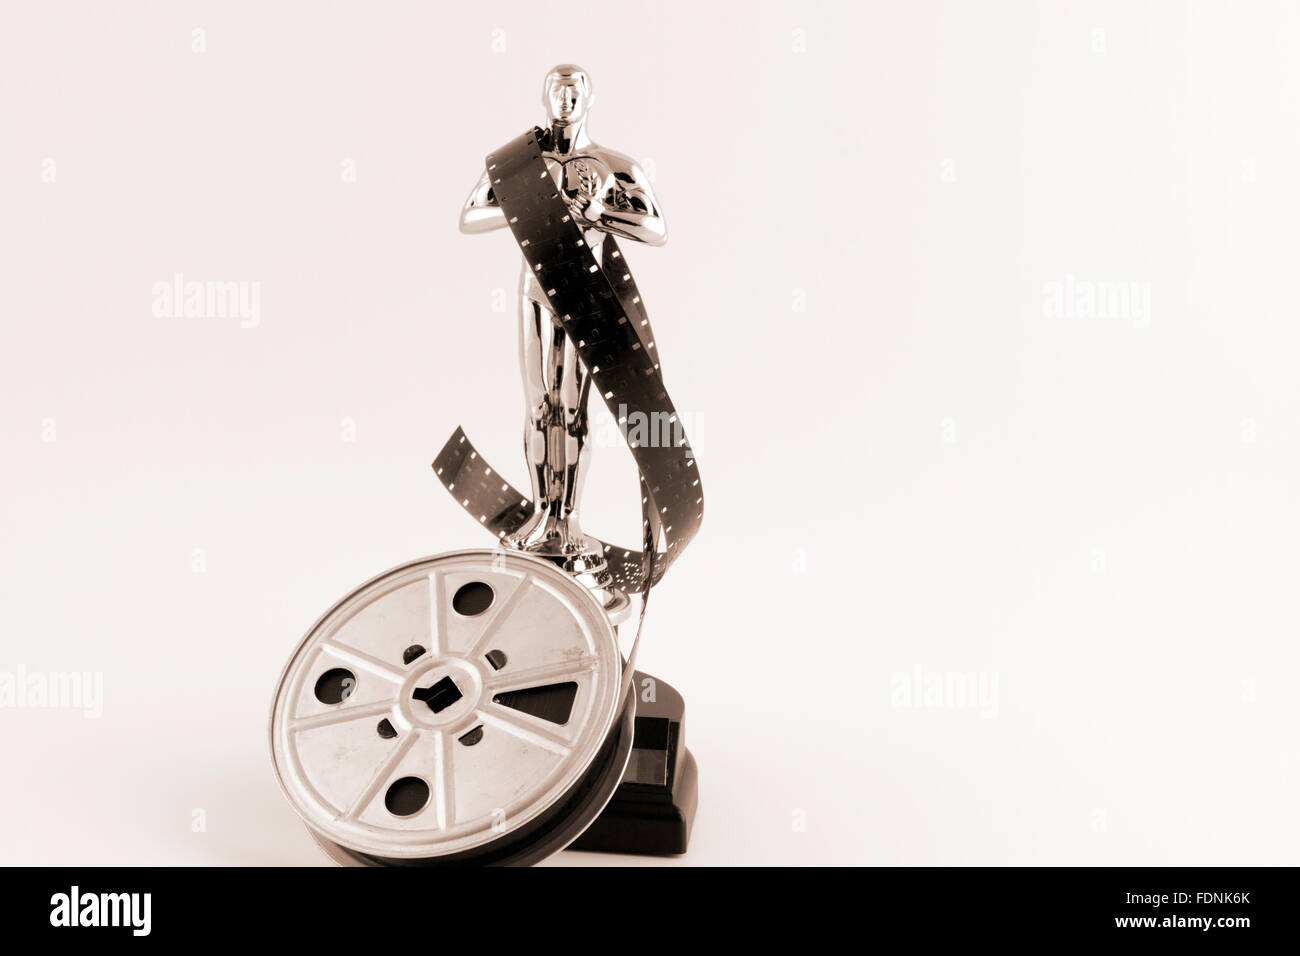 Academy Award Oscar statue with vintage movie reel desaturated with sepia tones. - Stock Image